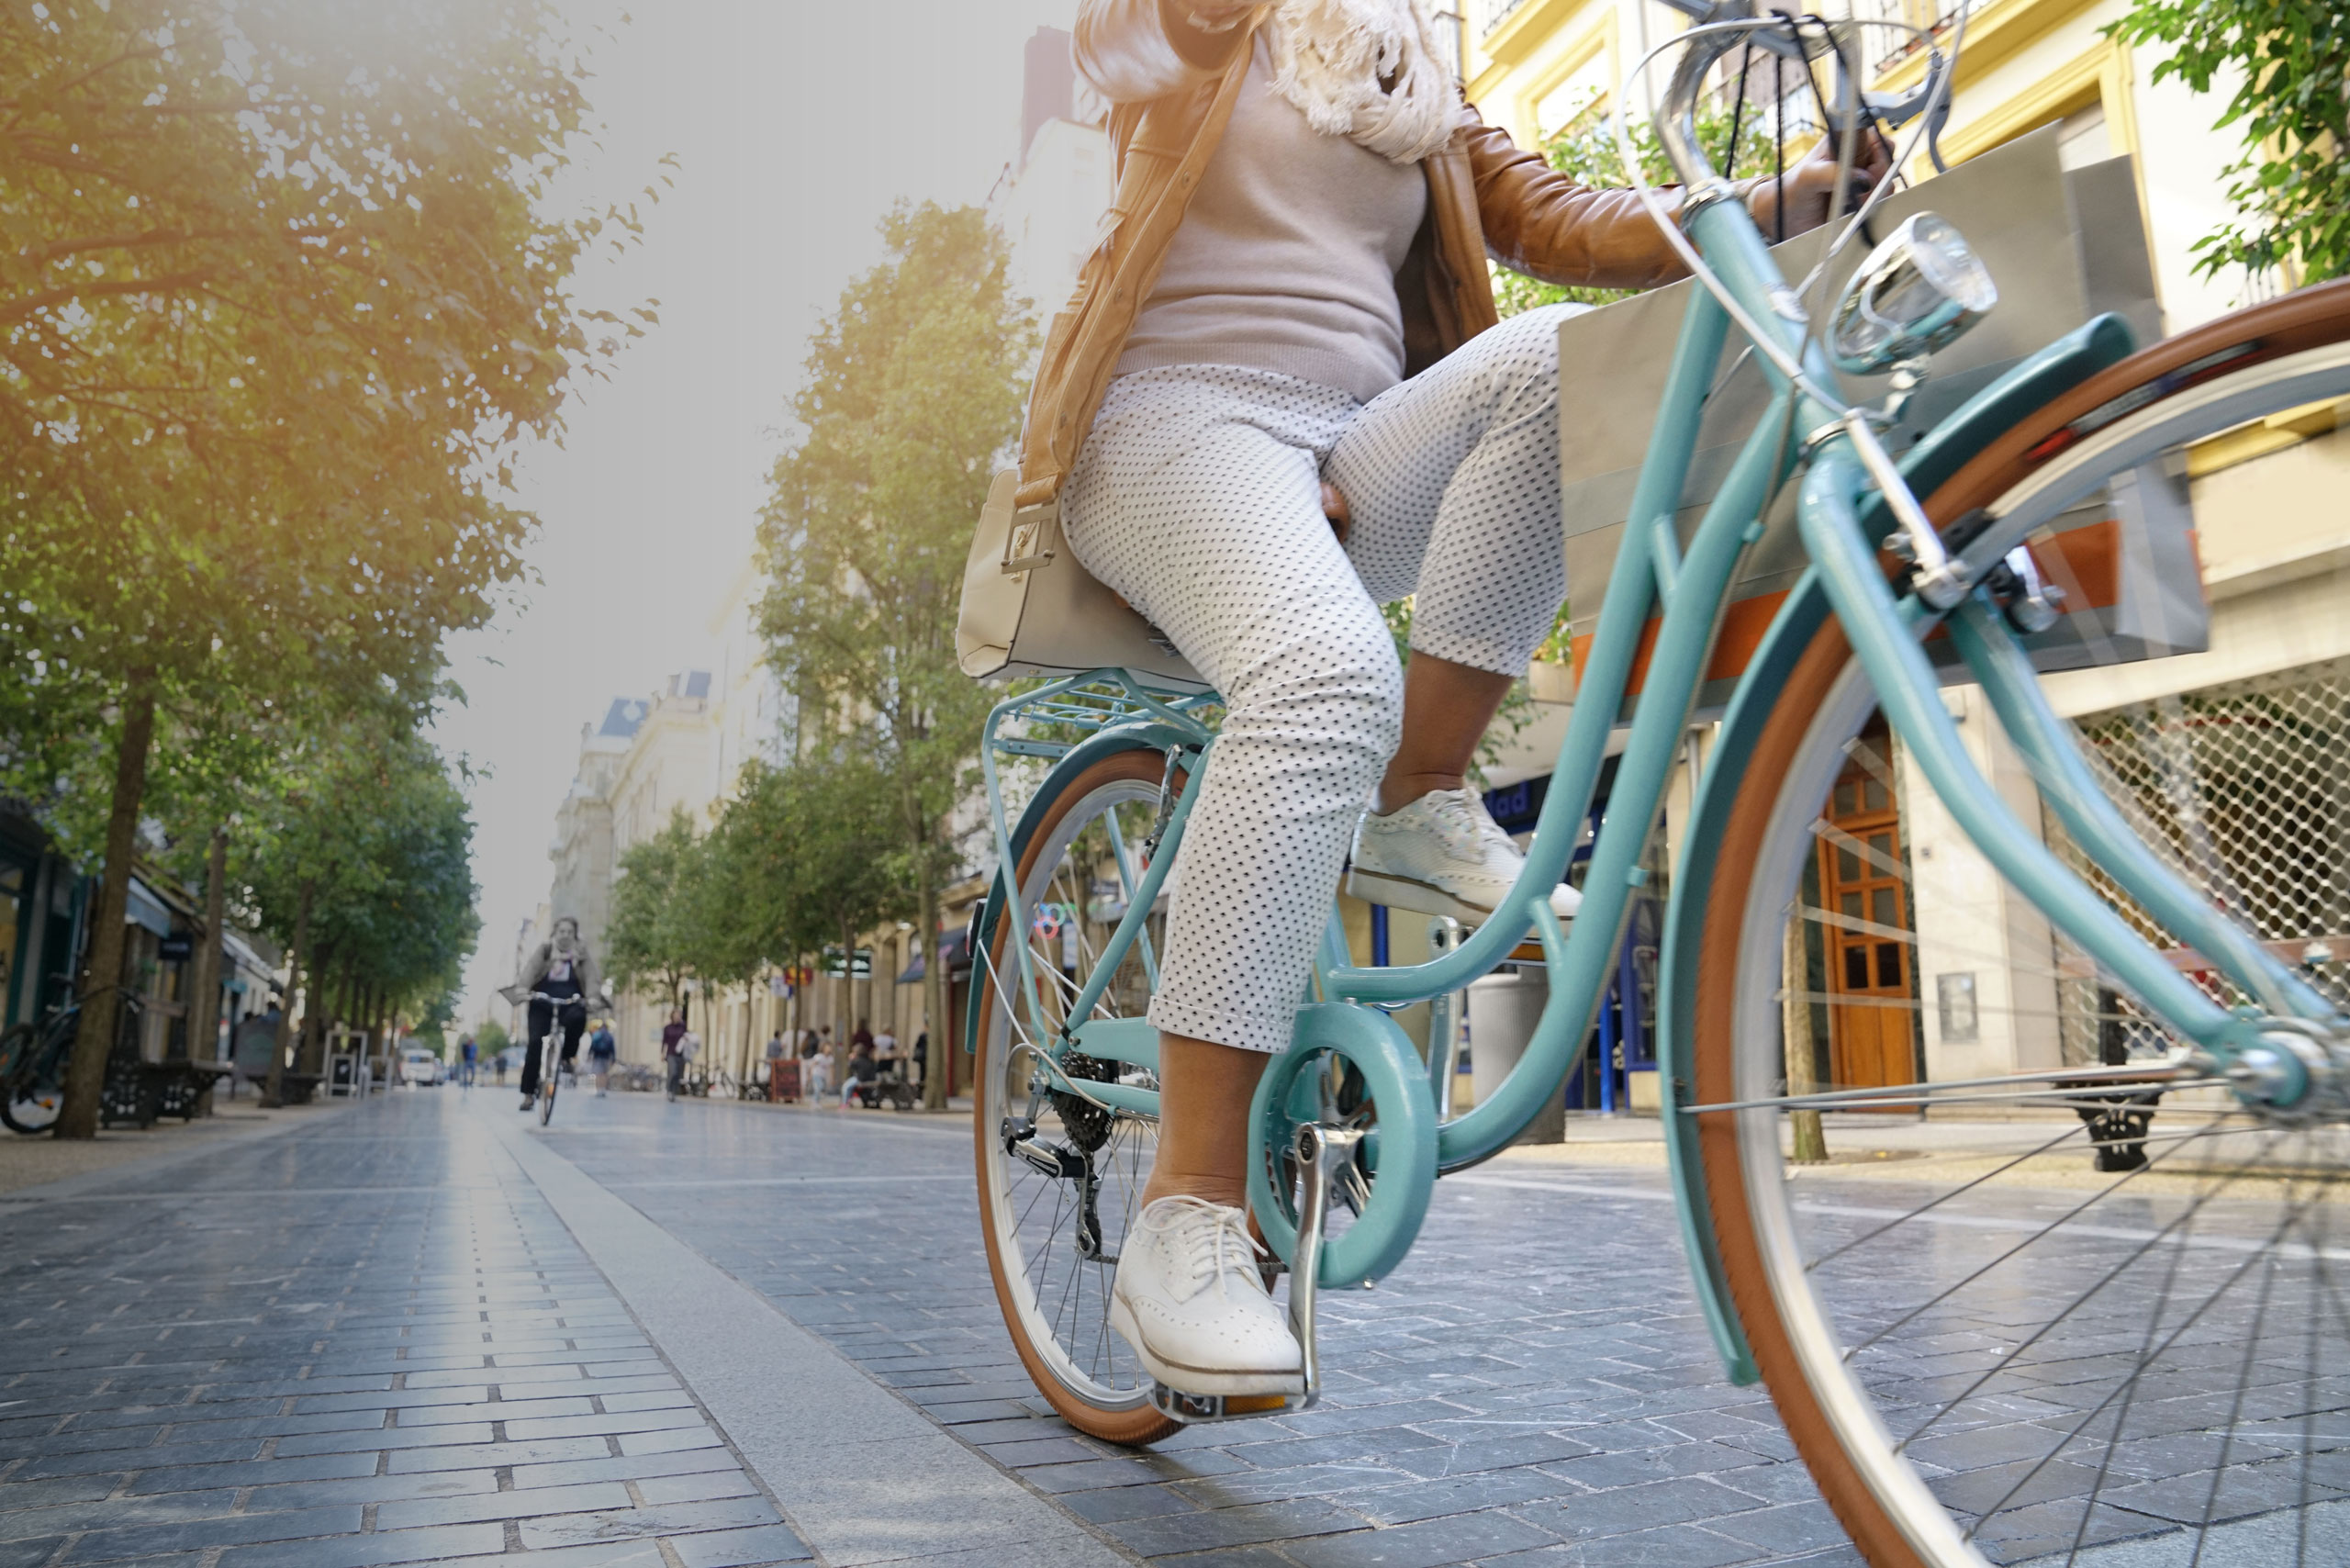 woman with lymphedema riding bike